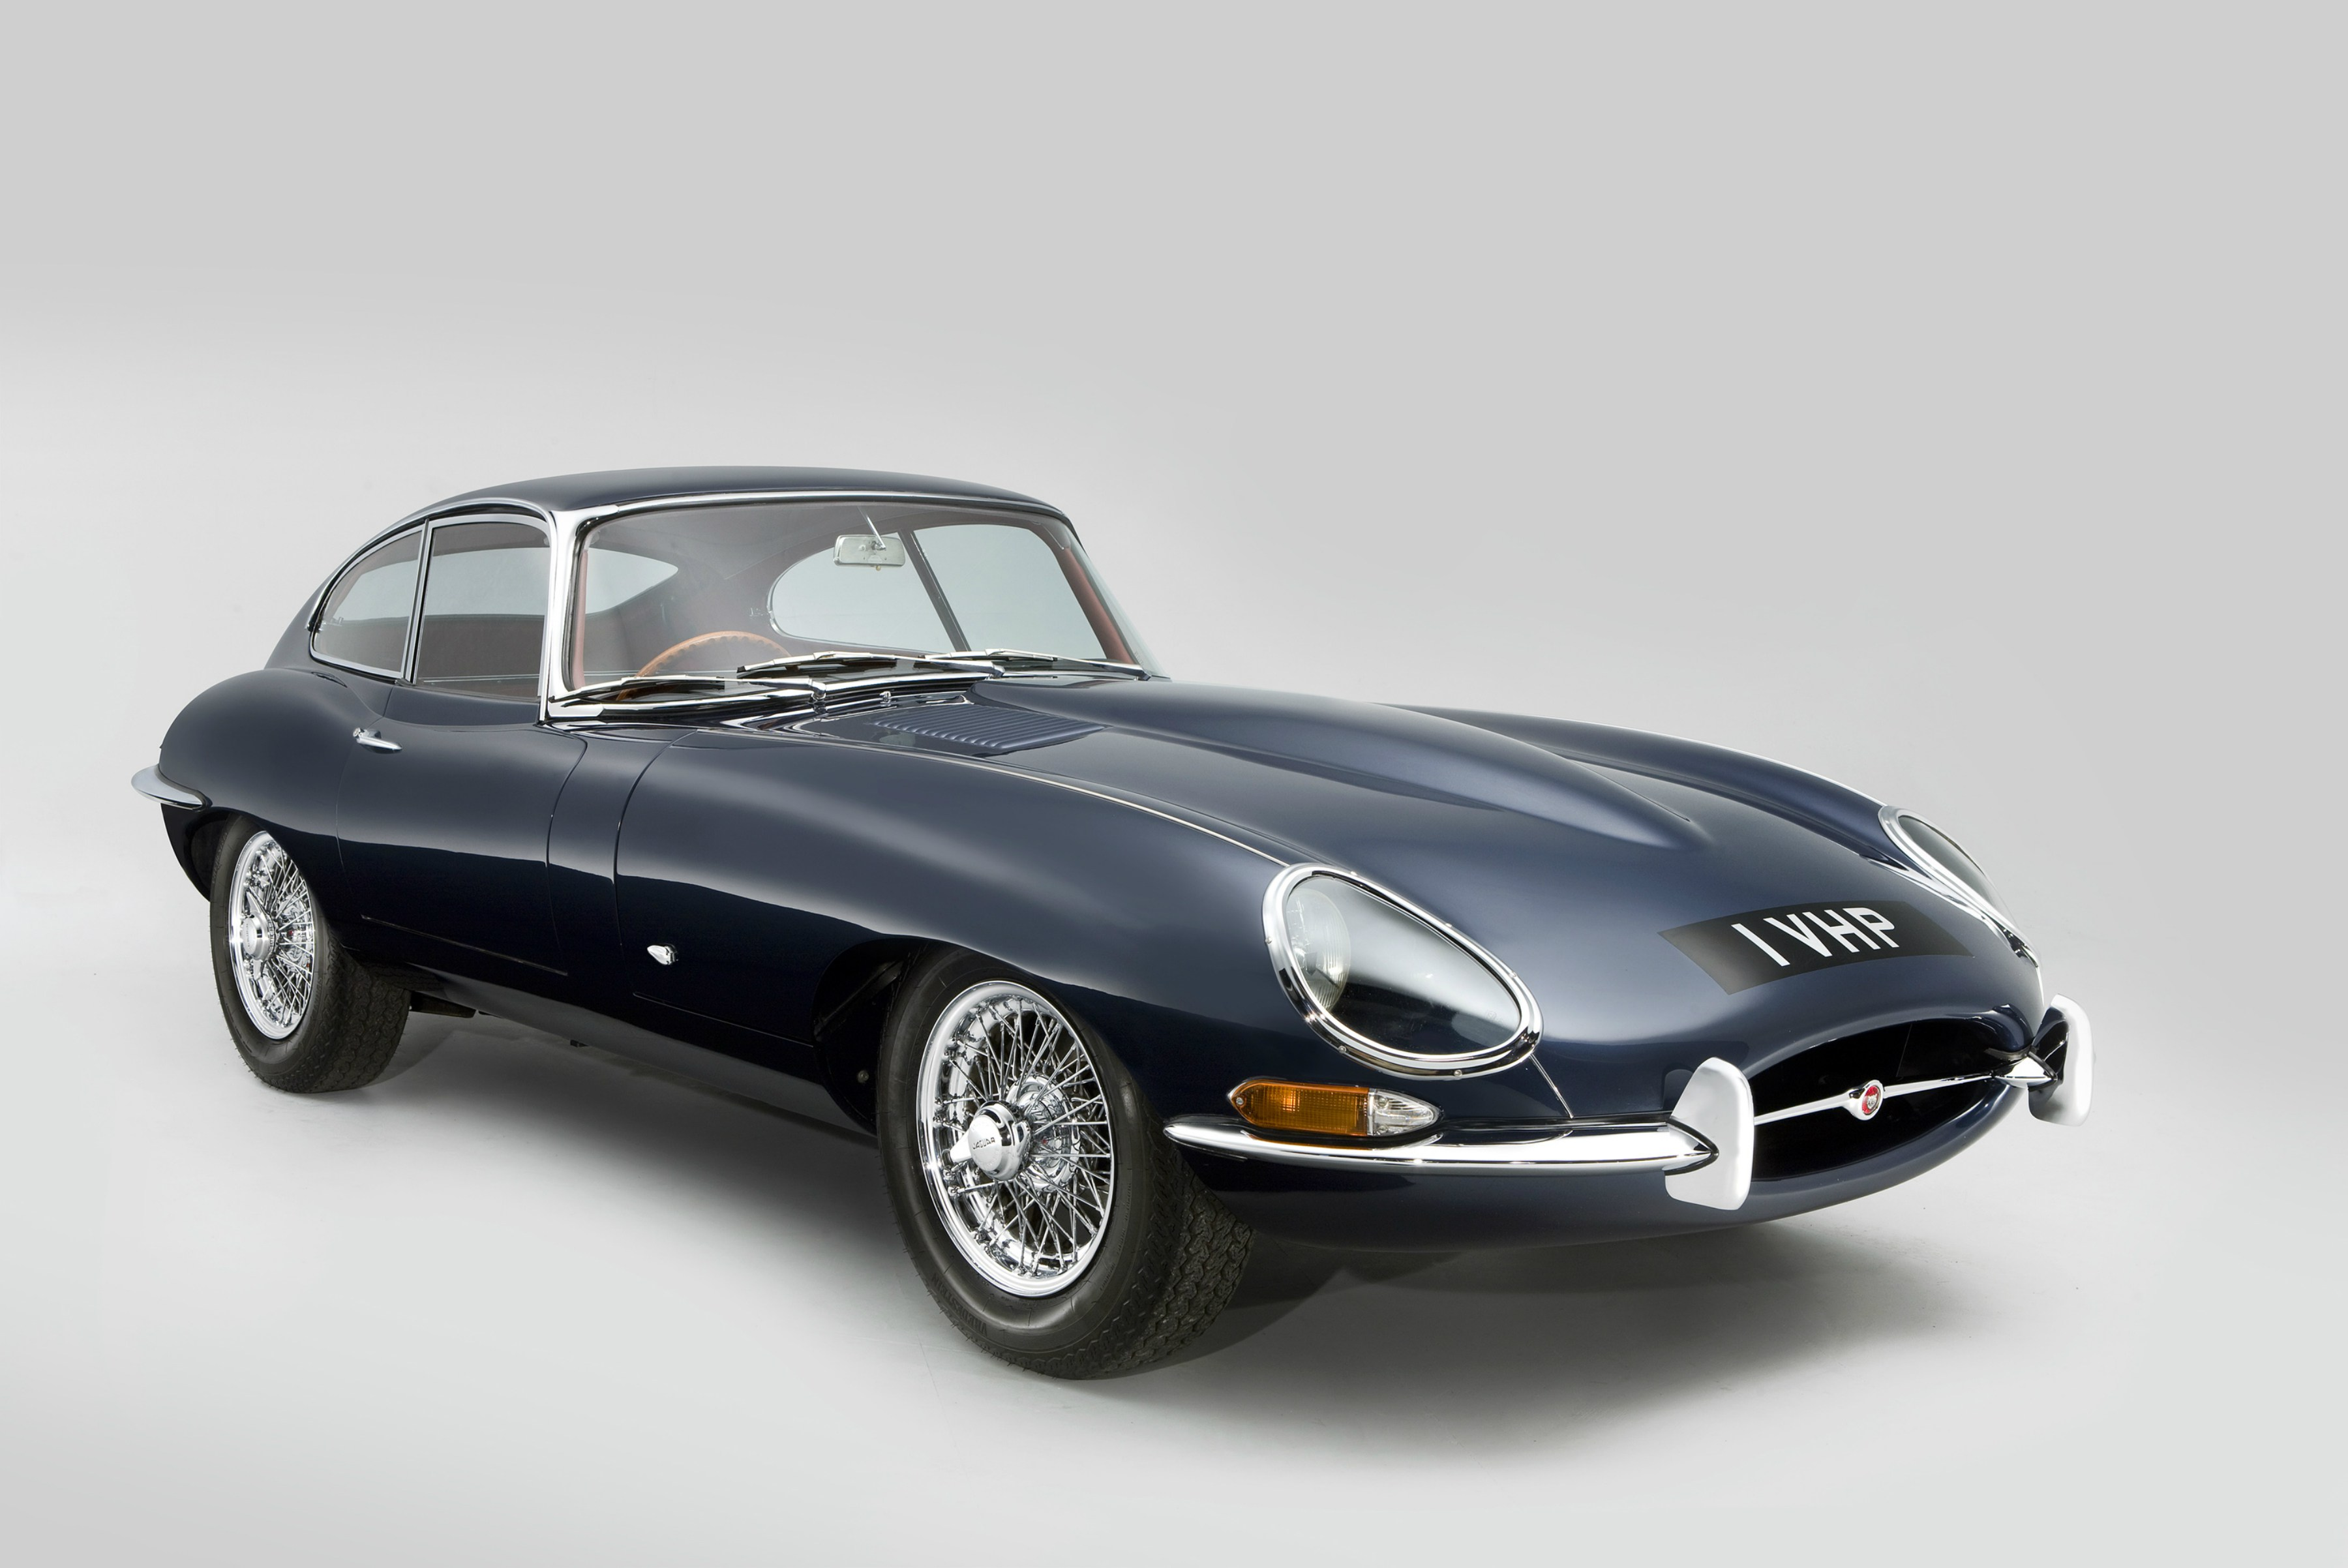 1961 Jaguar E-Type Fixed Head Coupe – the very first right hand drive production